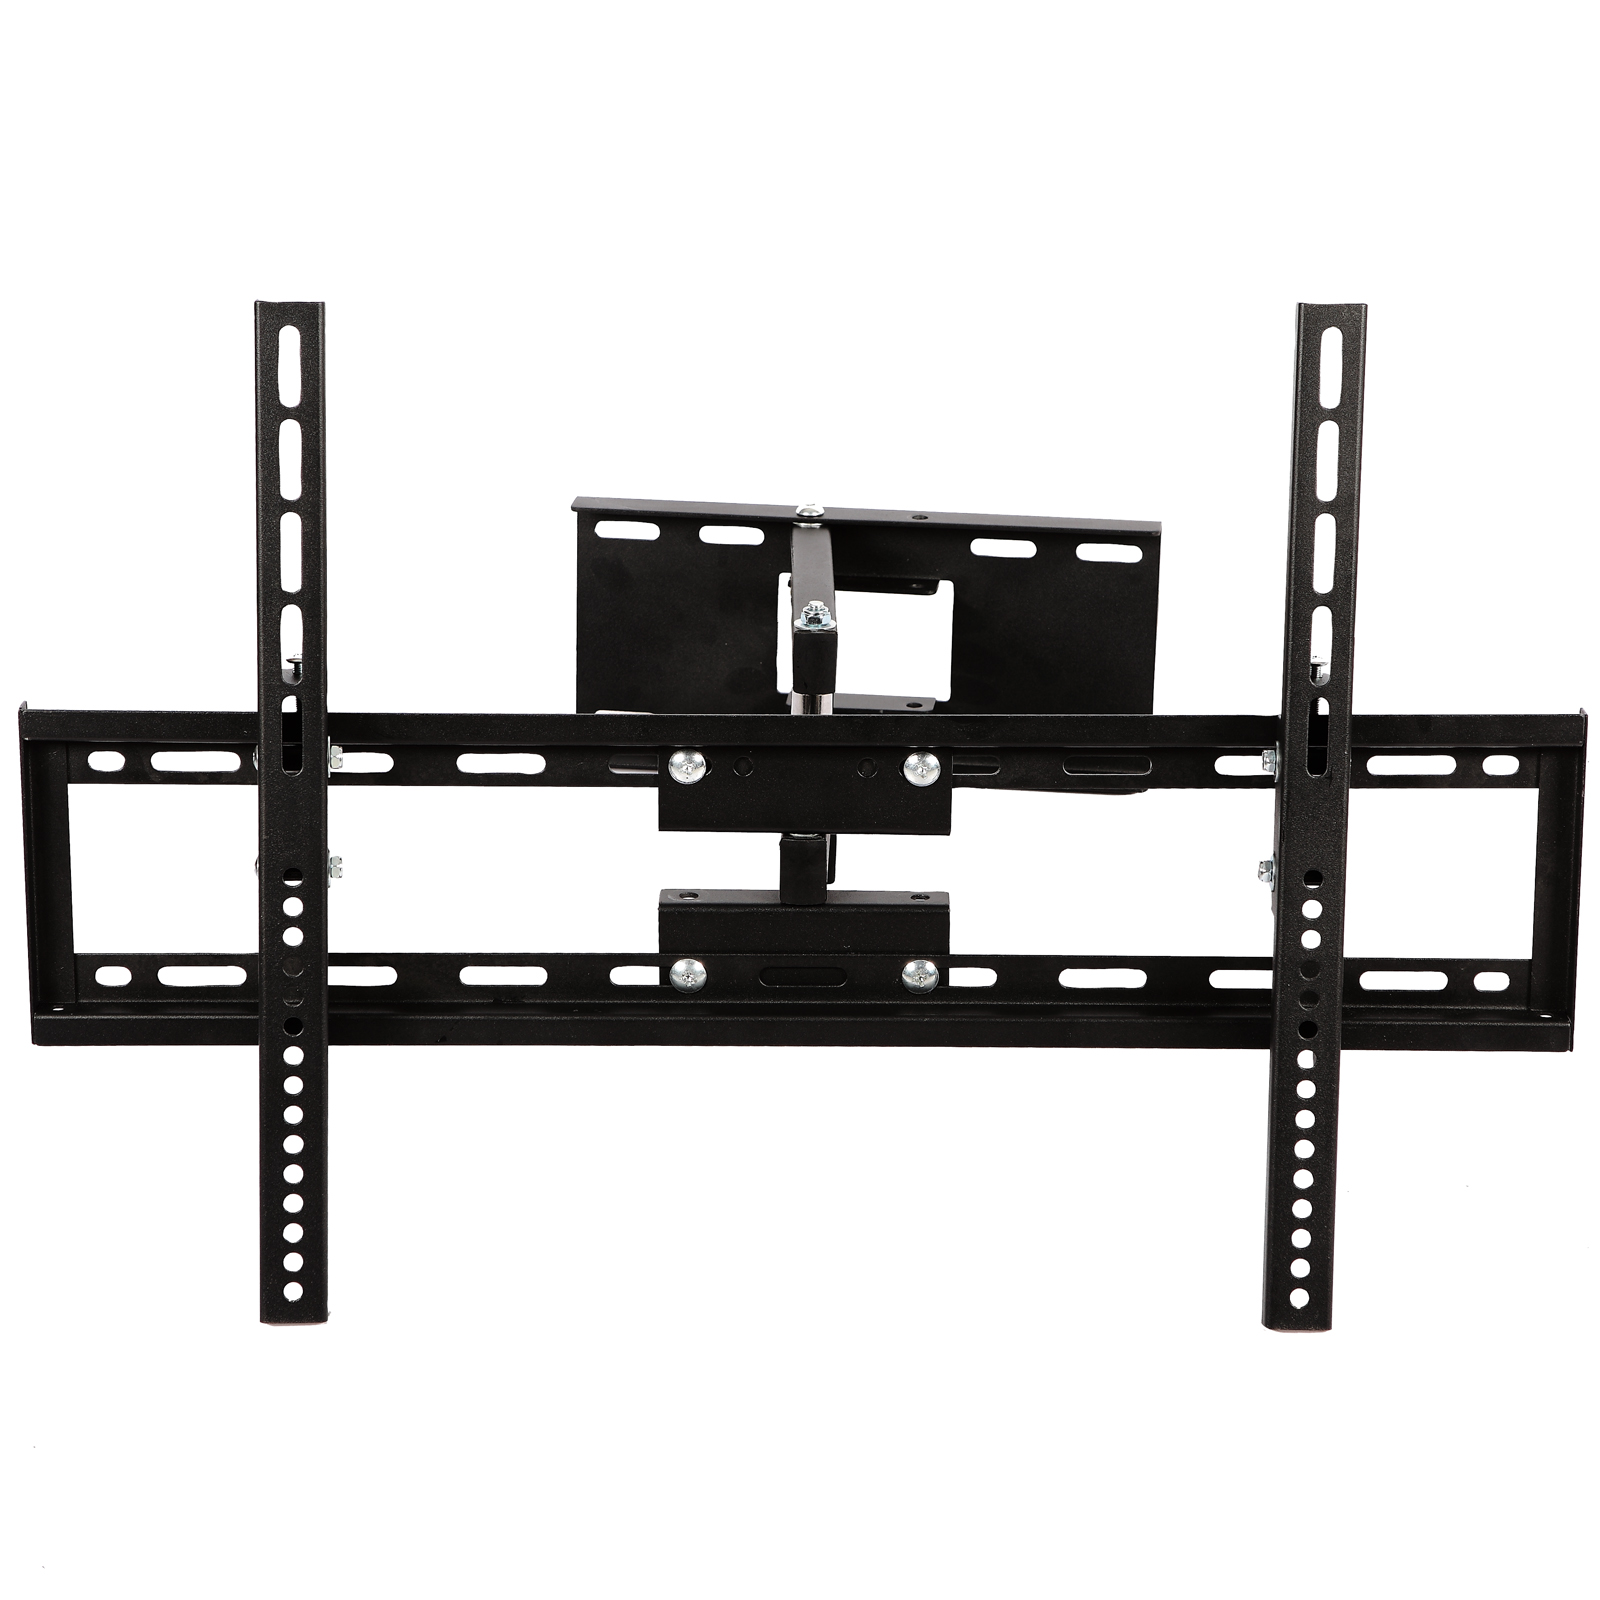 22 63 Articulating Swivel Flat Tilt Lcd Led Plasma Tv